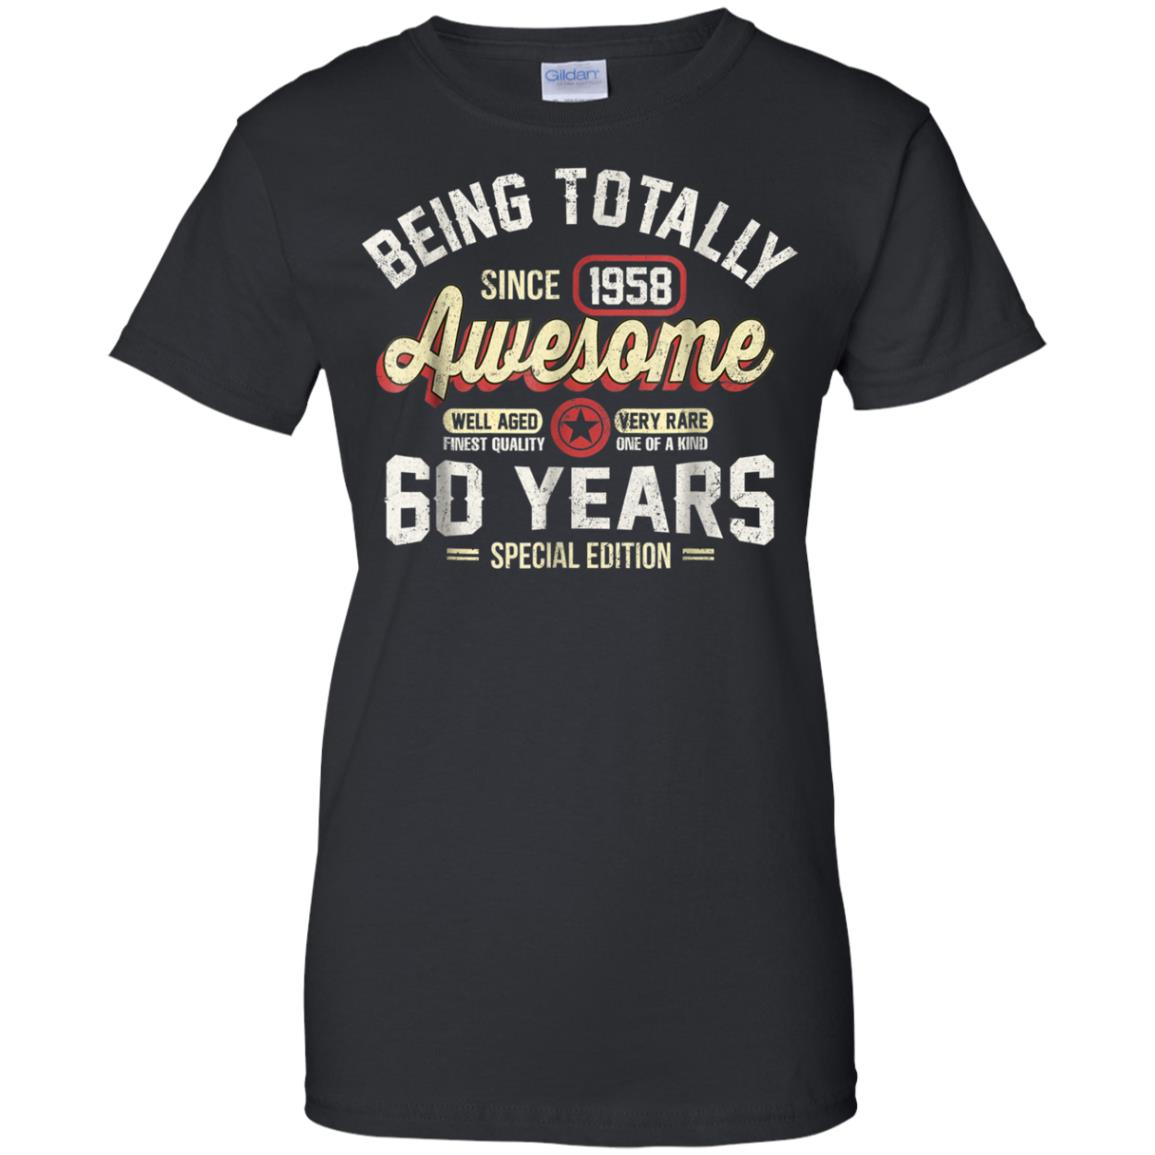 9e0386cfe Awesome 60th birthday gift vintage 1958 t shirt men women - 99promocode